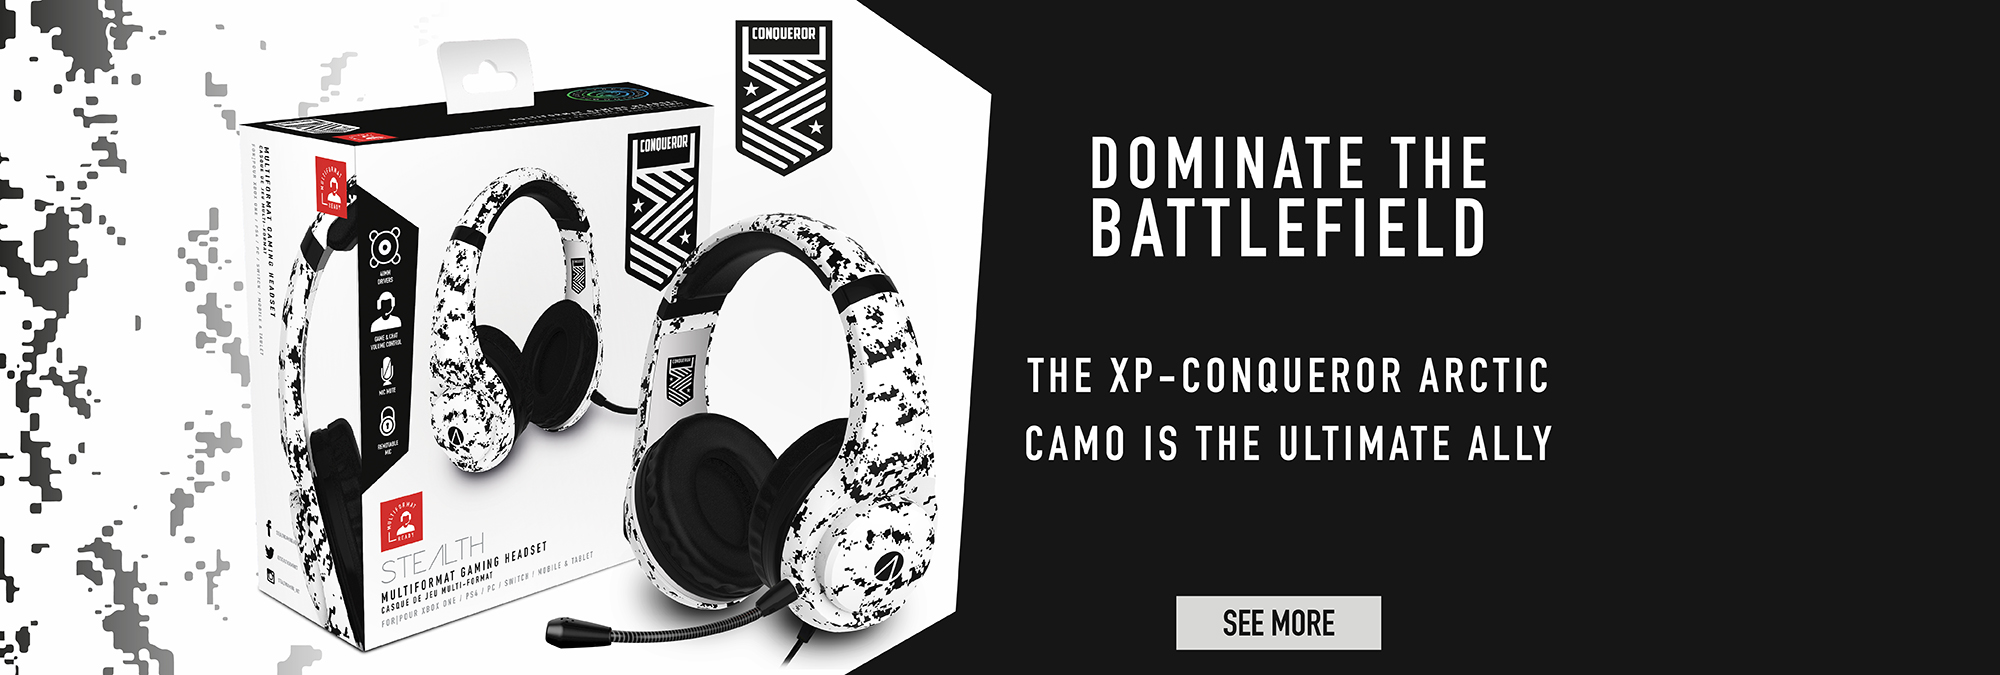 CONQUER THE BATTLEFIELD…. THE STEALTH CONQUEROR